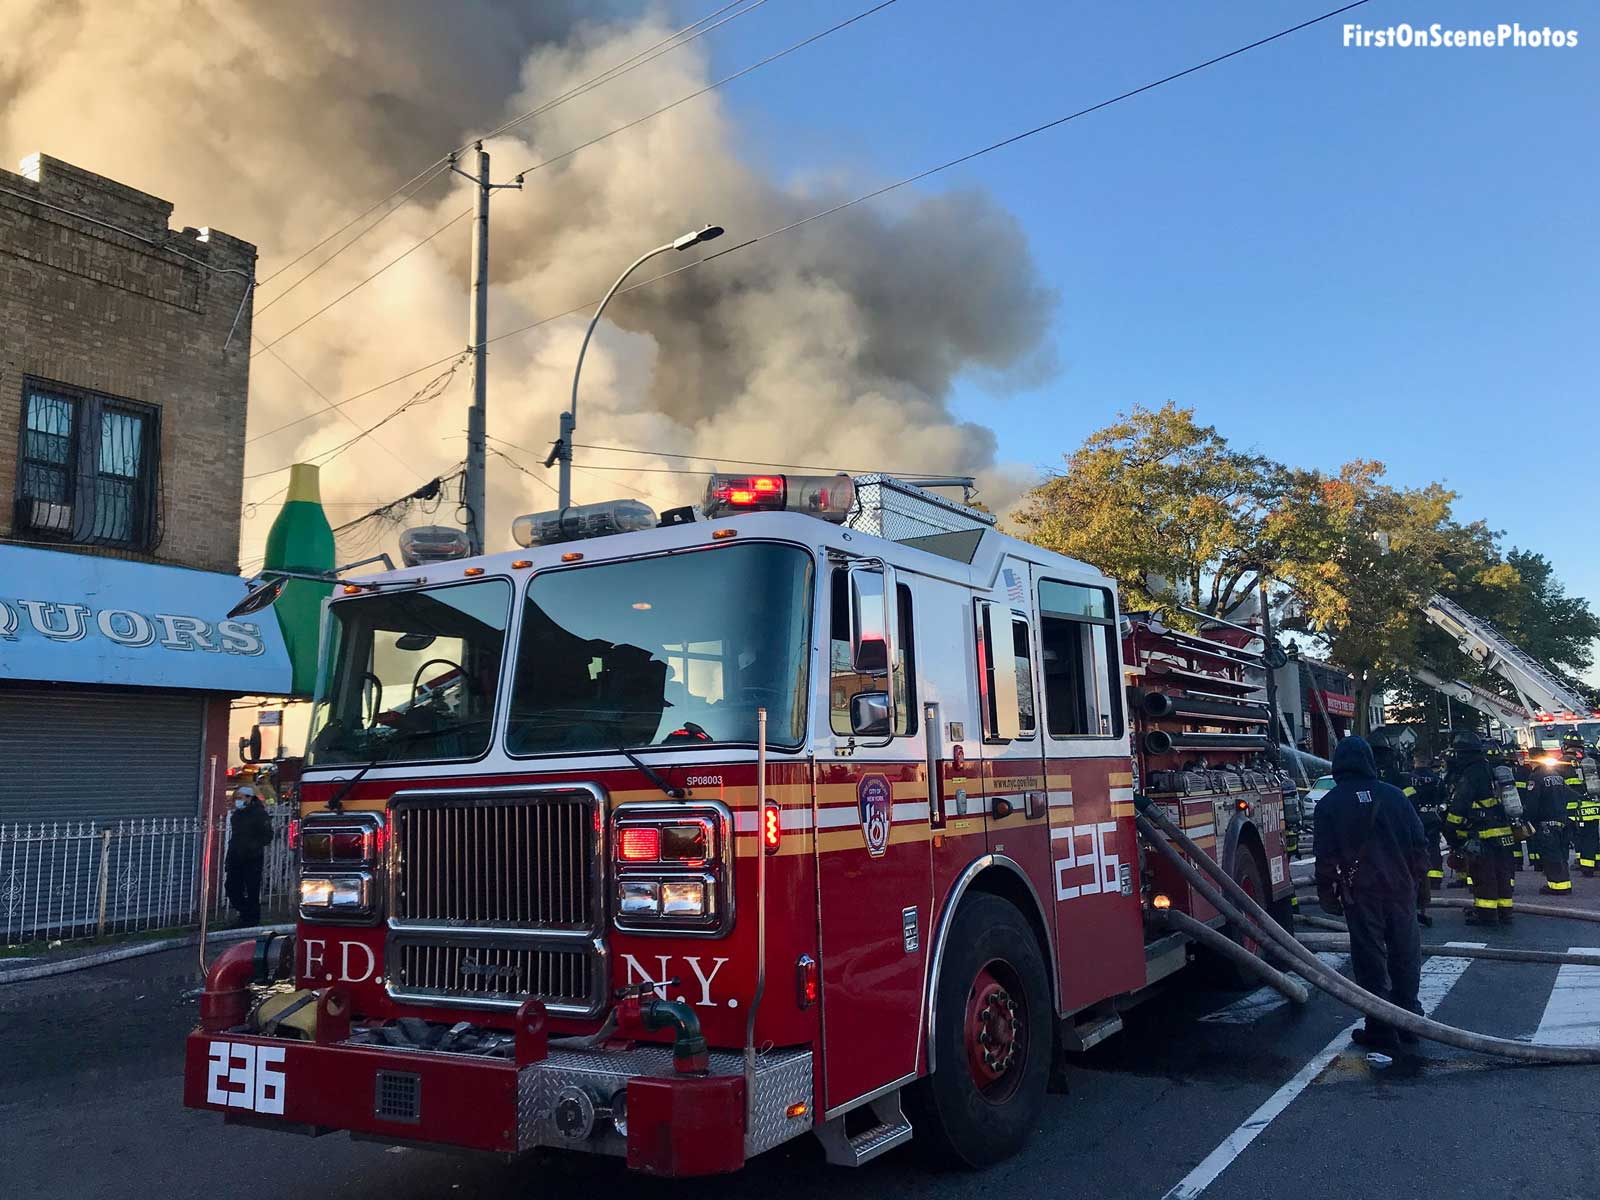 FDNY fire apparatus at the scene of a five-alarm fire in Brooklyn